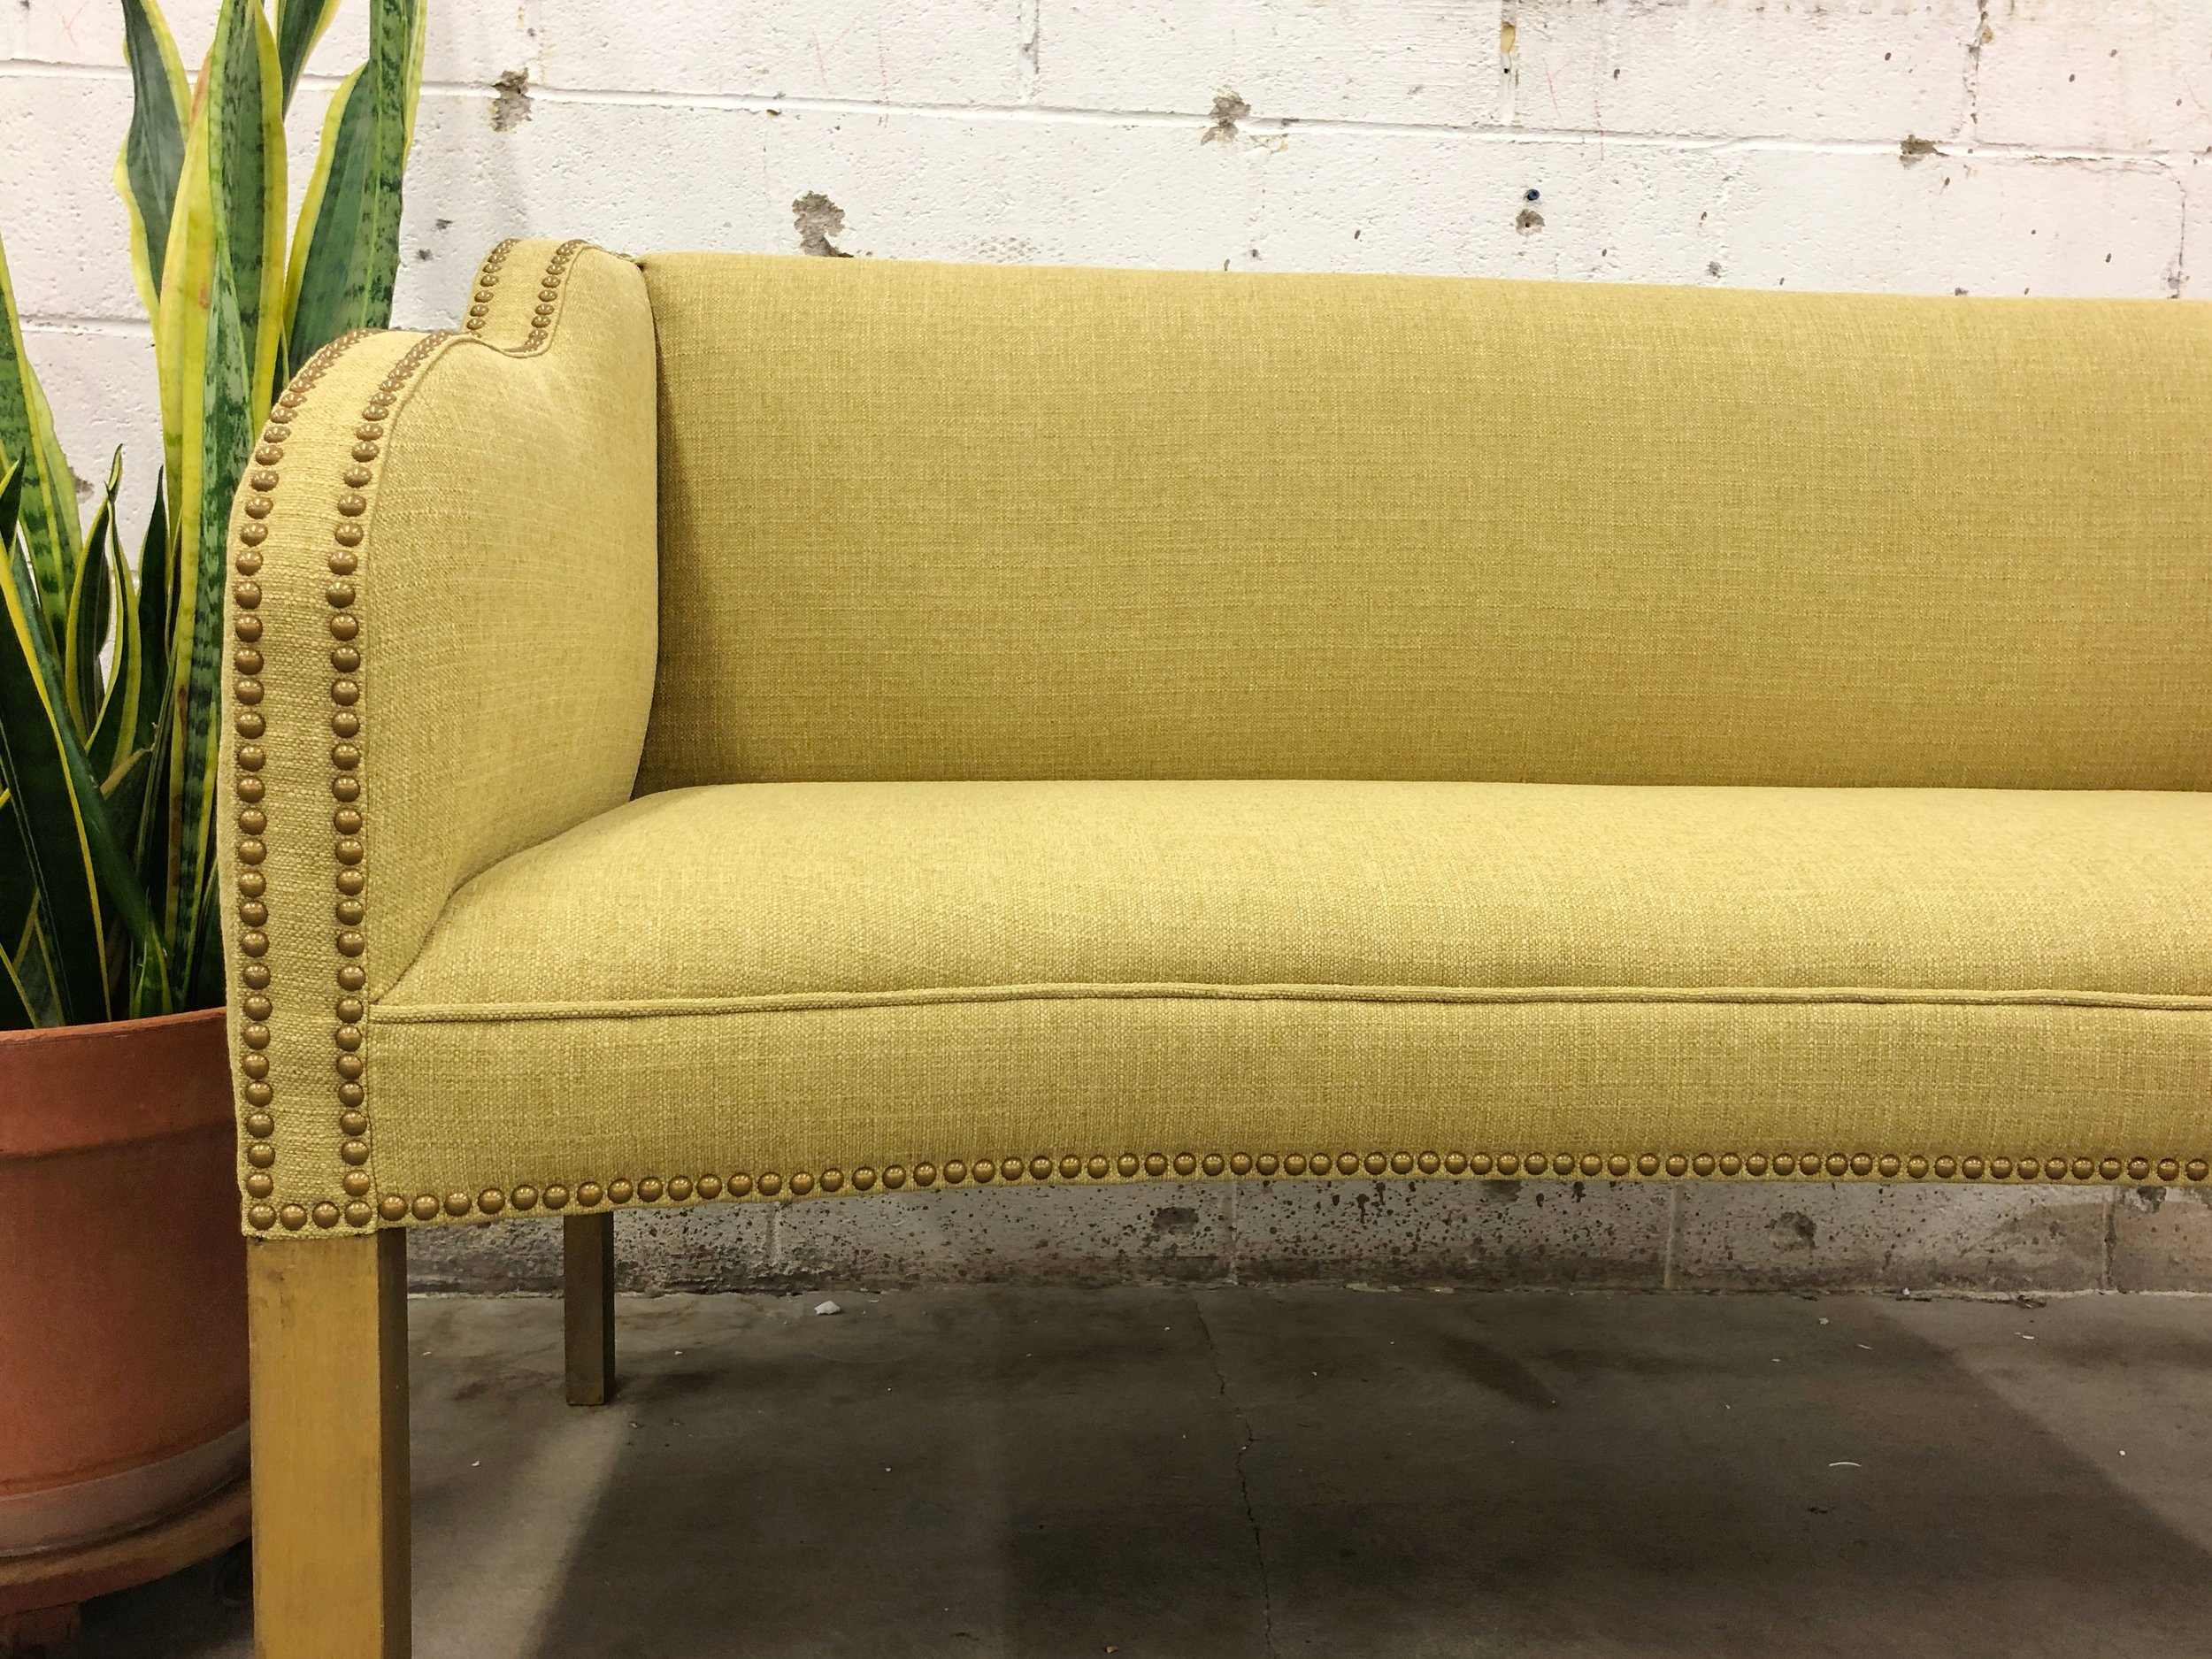 "The settee's new owner said it best, ""Thank you for all the hard work and care you put into turning this Old Lady into a Roaring Young Thing again."" You're sure welcome."